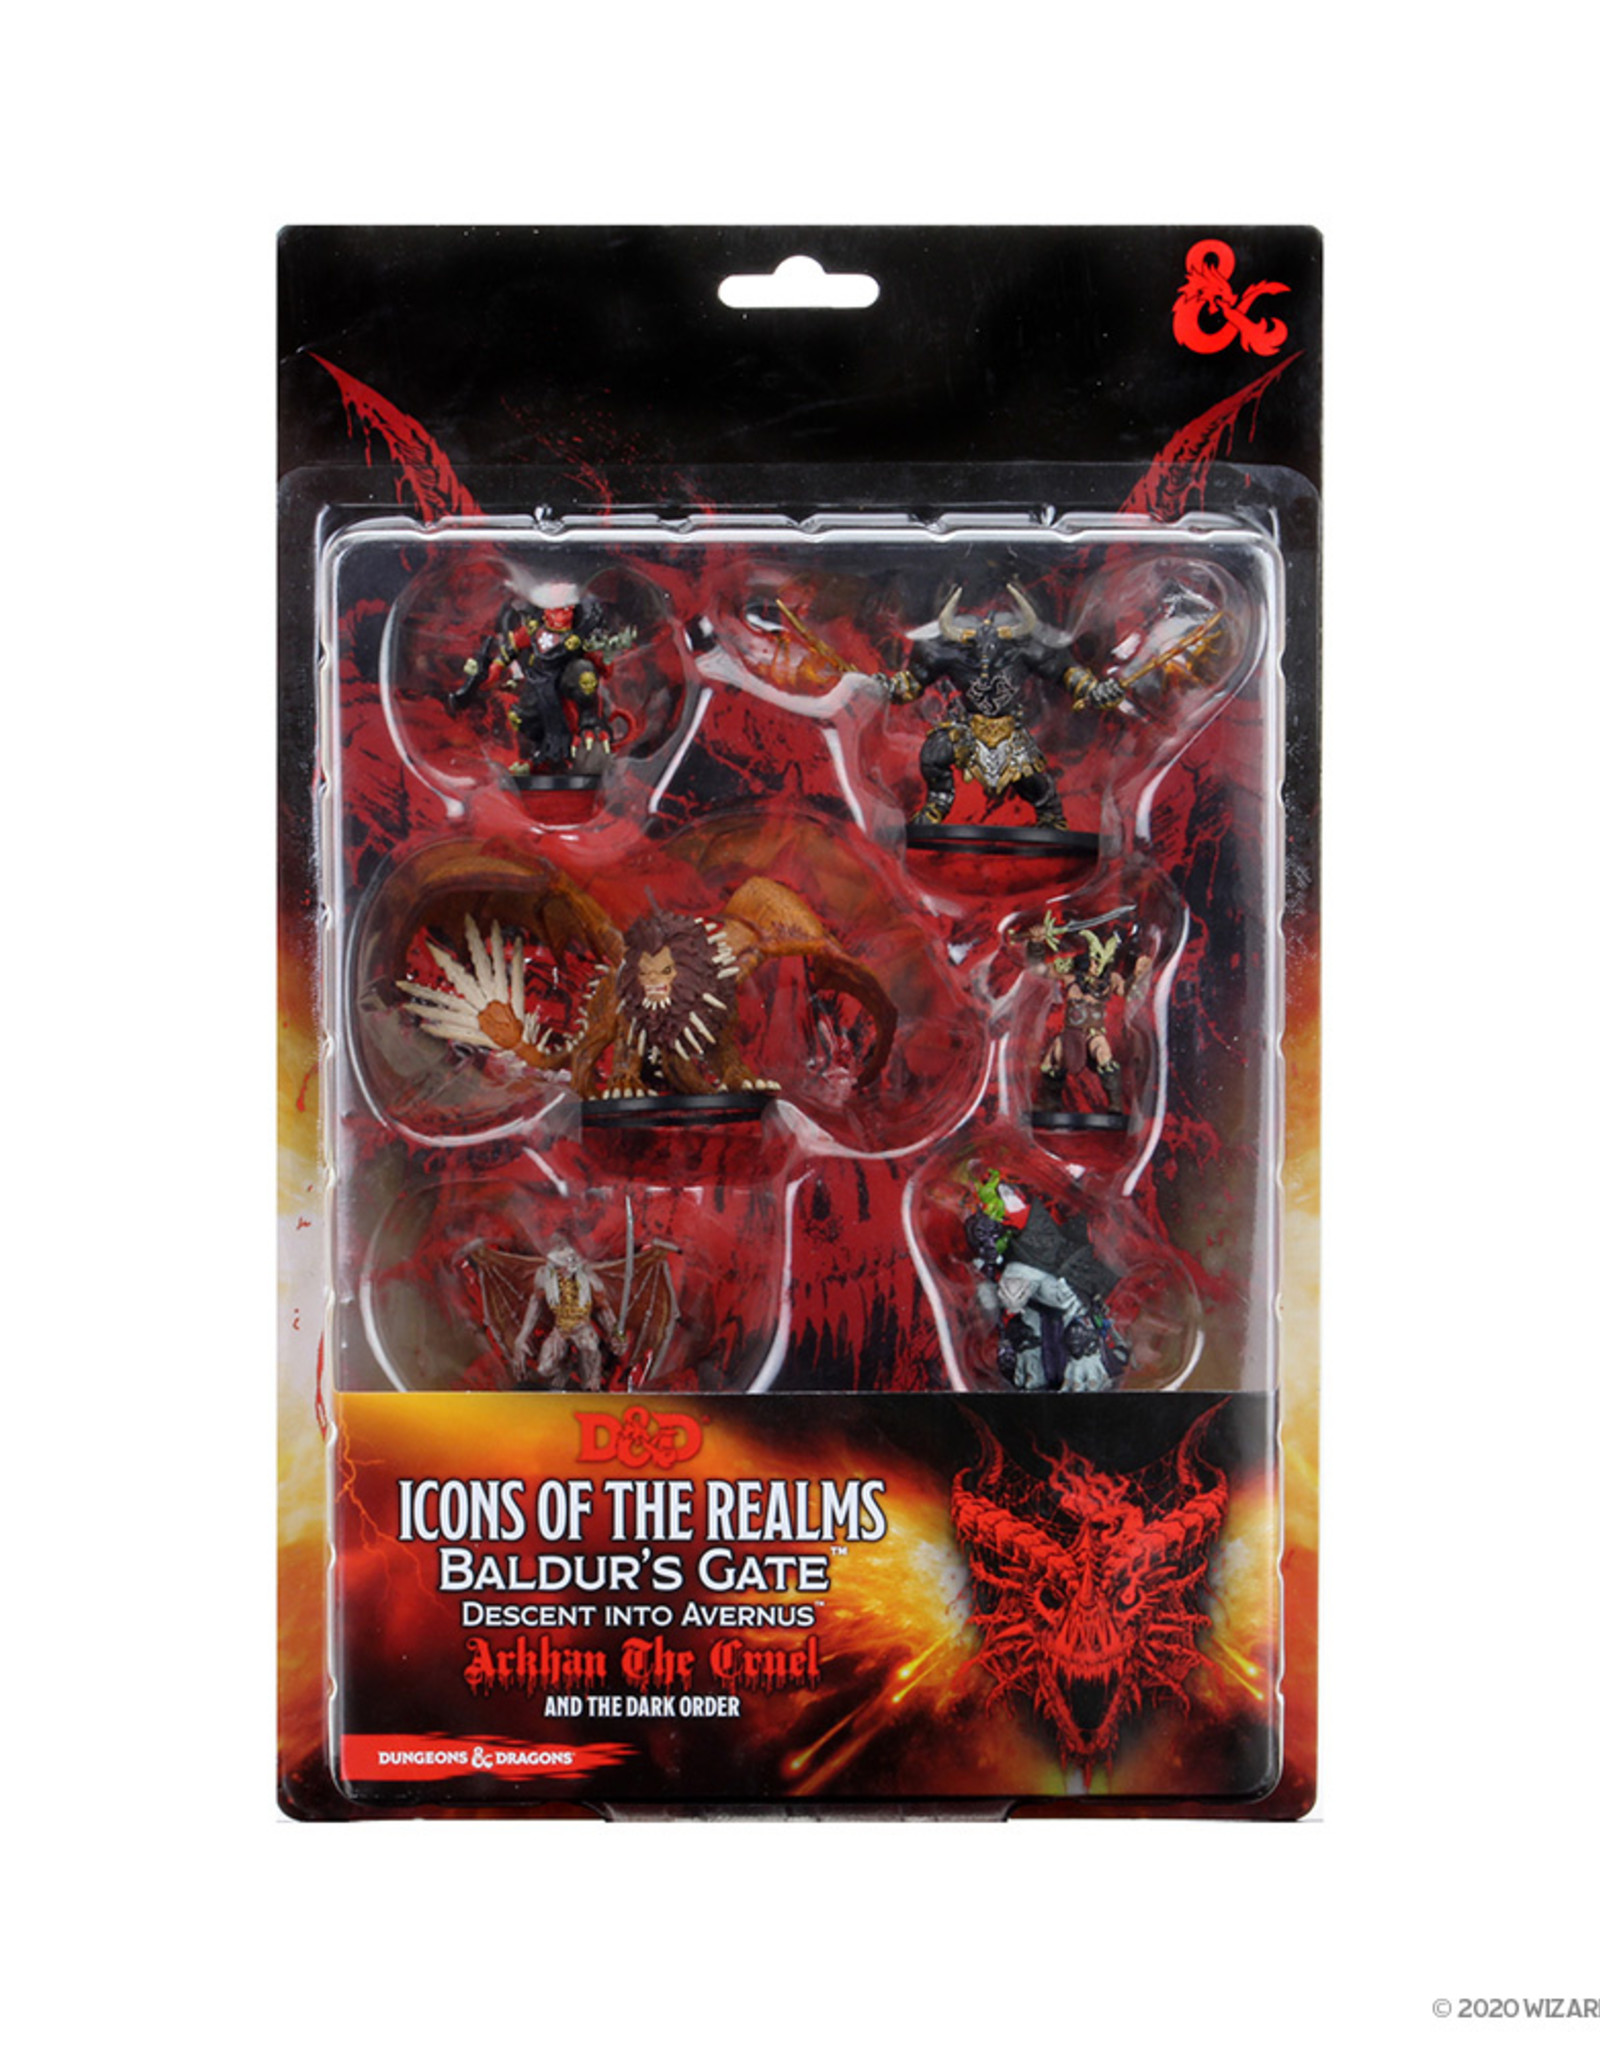 Wizkids D&D Icons of the Realms Figure Pack Descent into Avernus: Arkhan the Cruel and The Dark Order